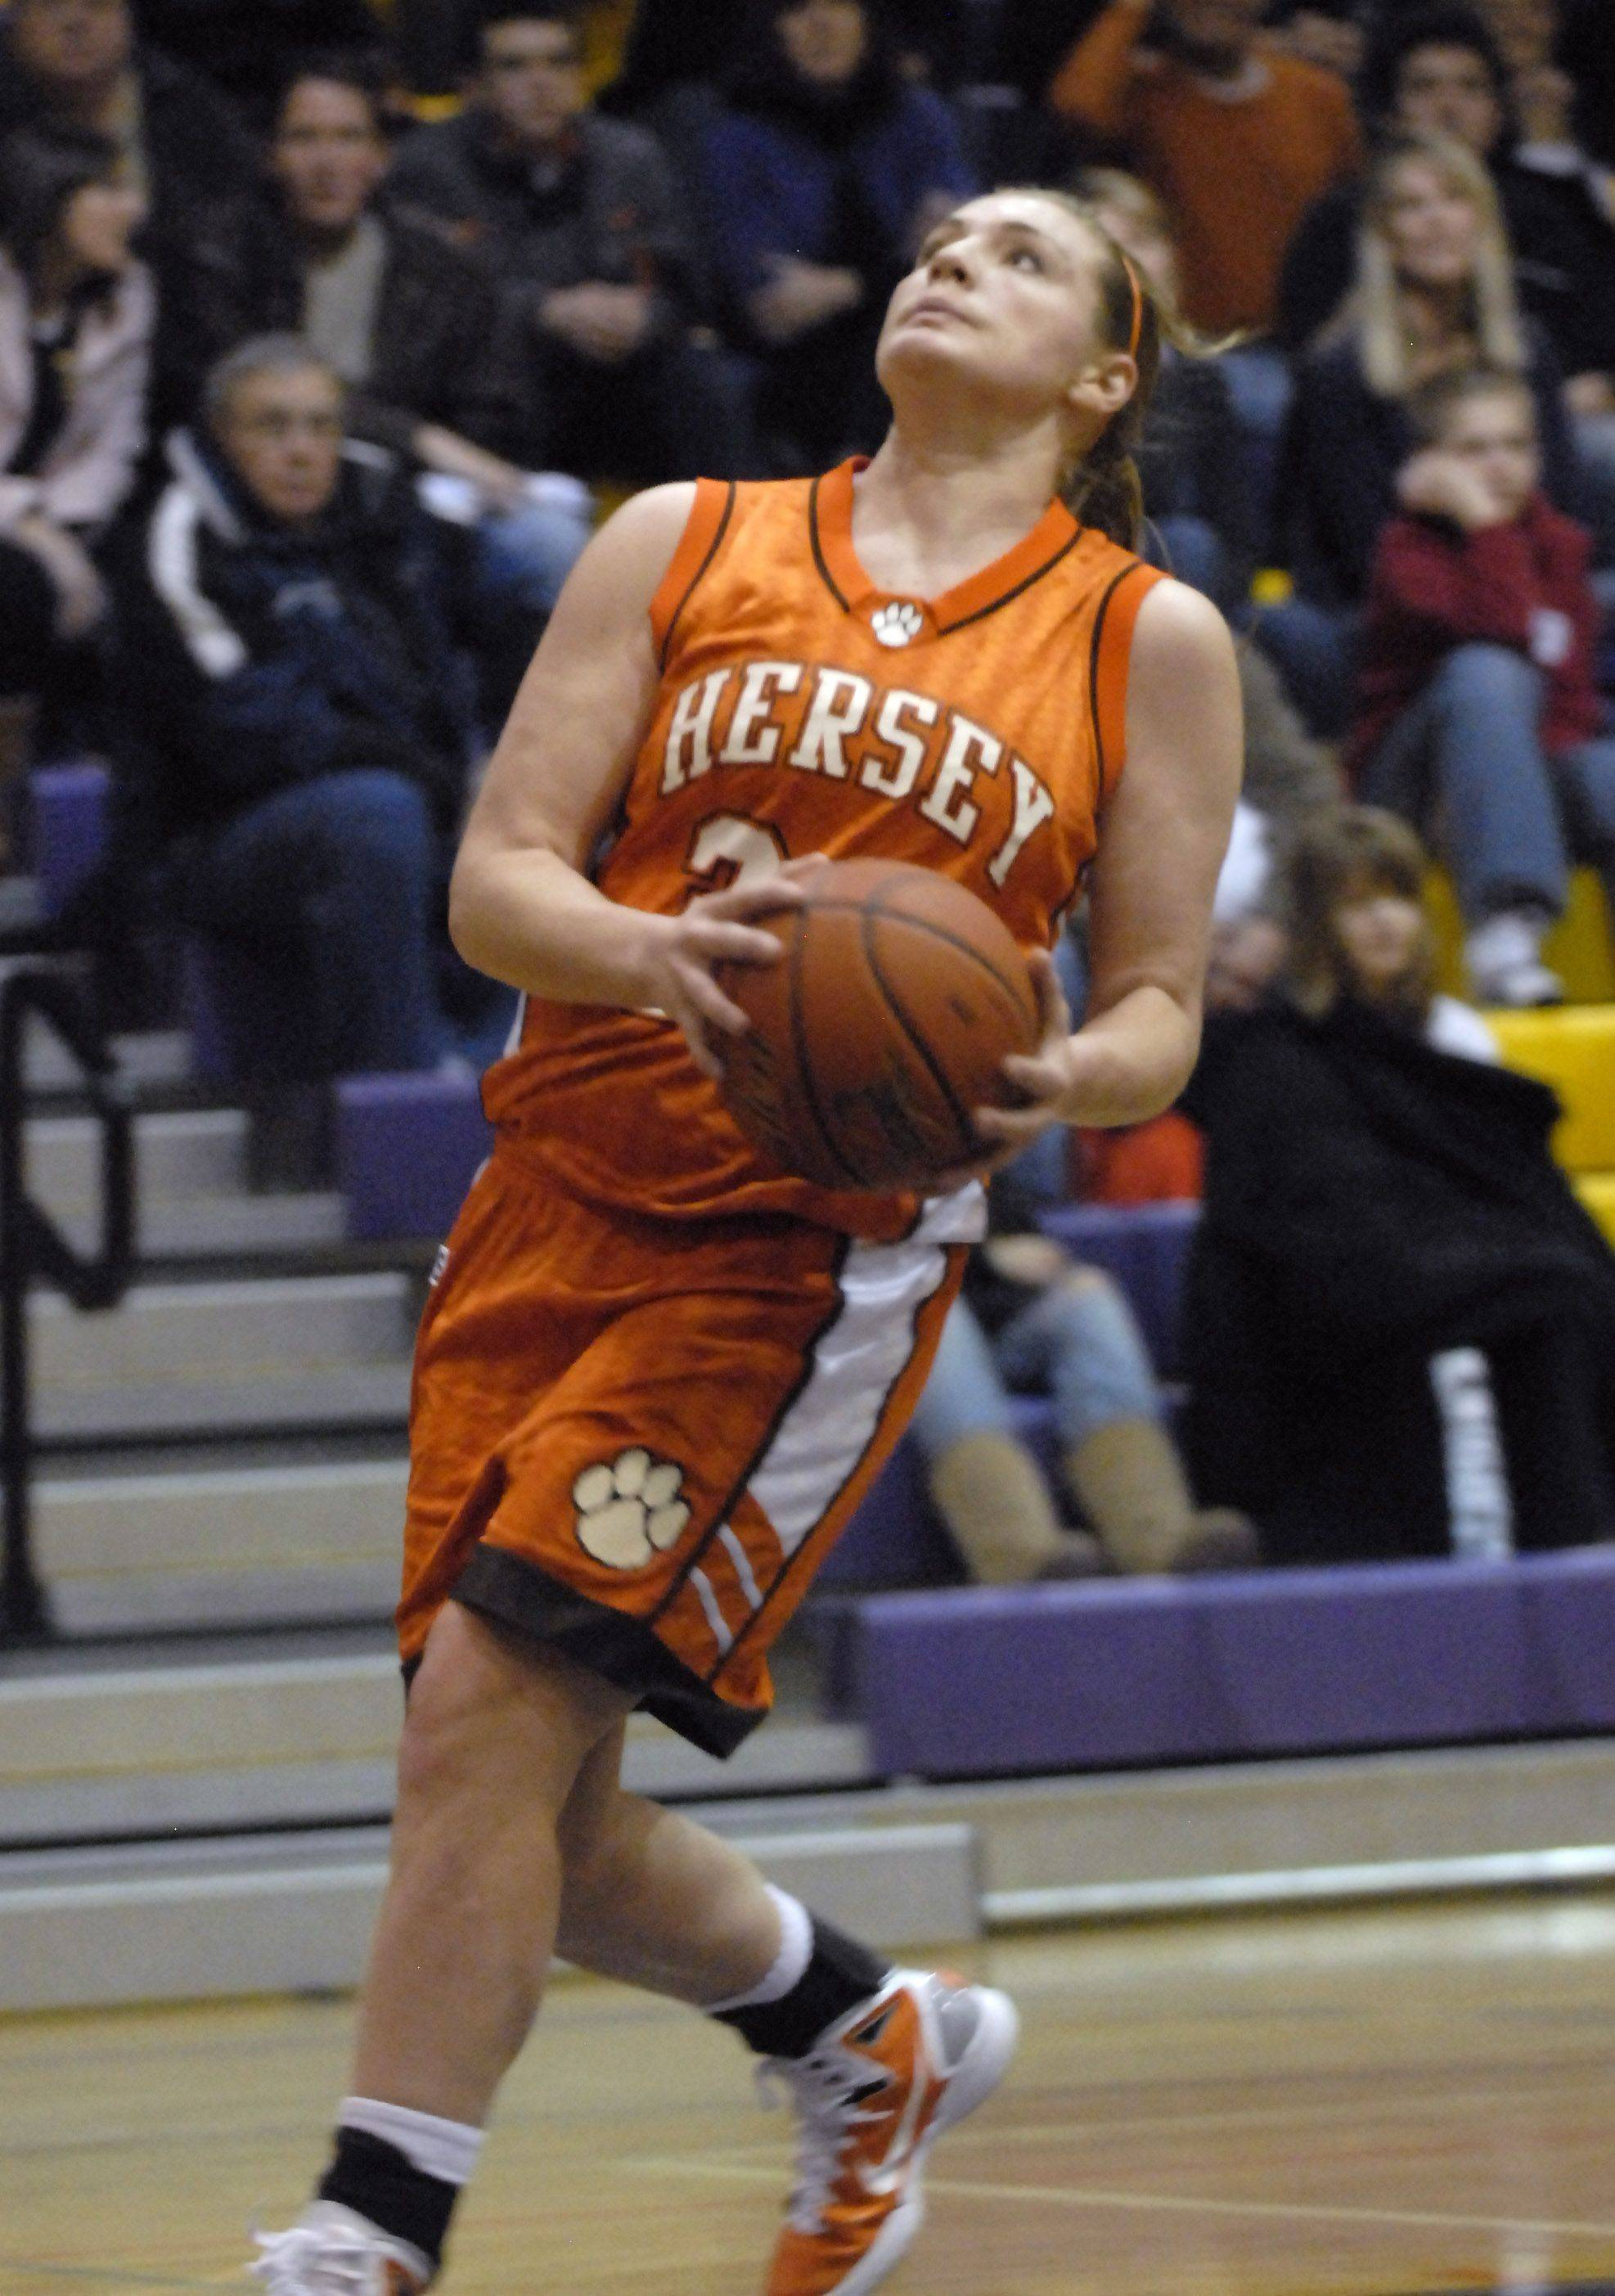 Images from the Rolling Meadows vs Hersey girls basketball game in Rolling Meadows on Friday, December 17th.